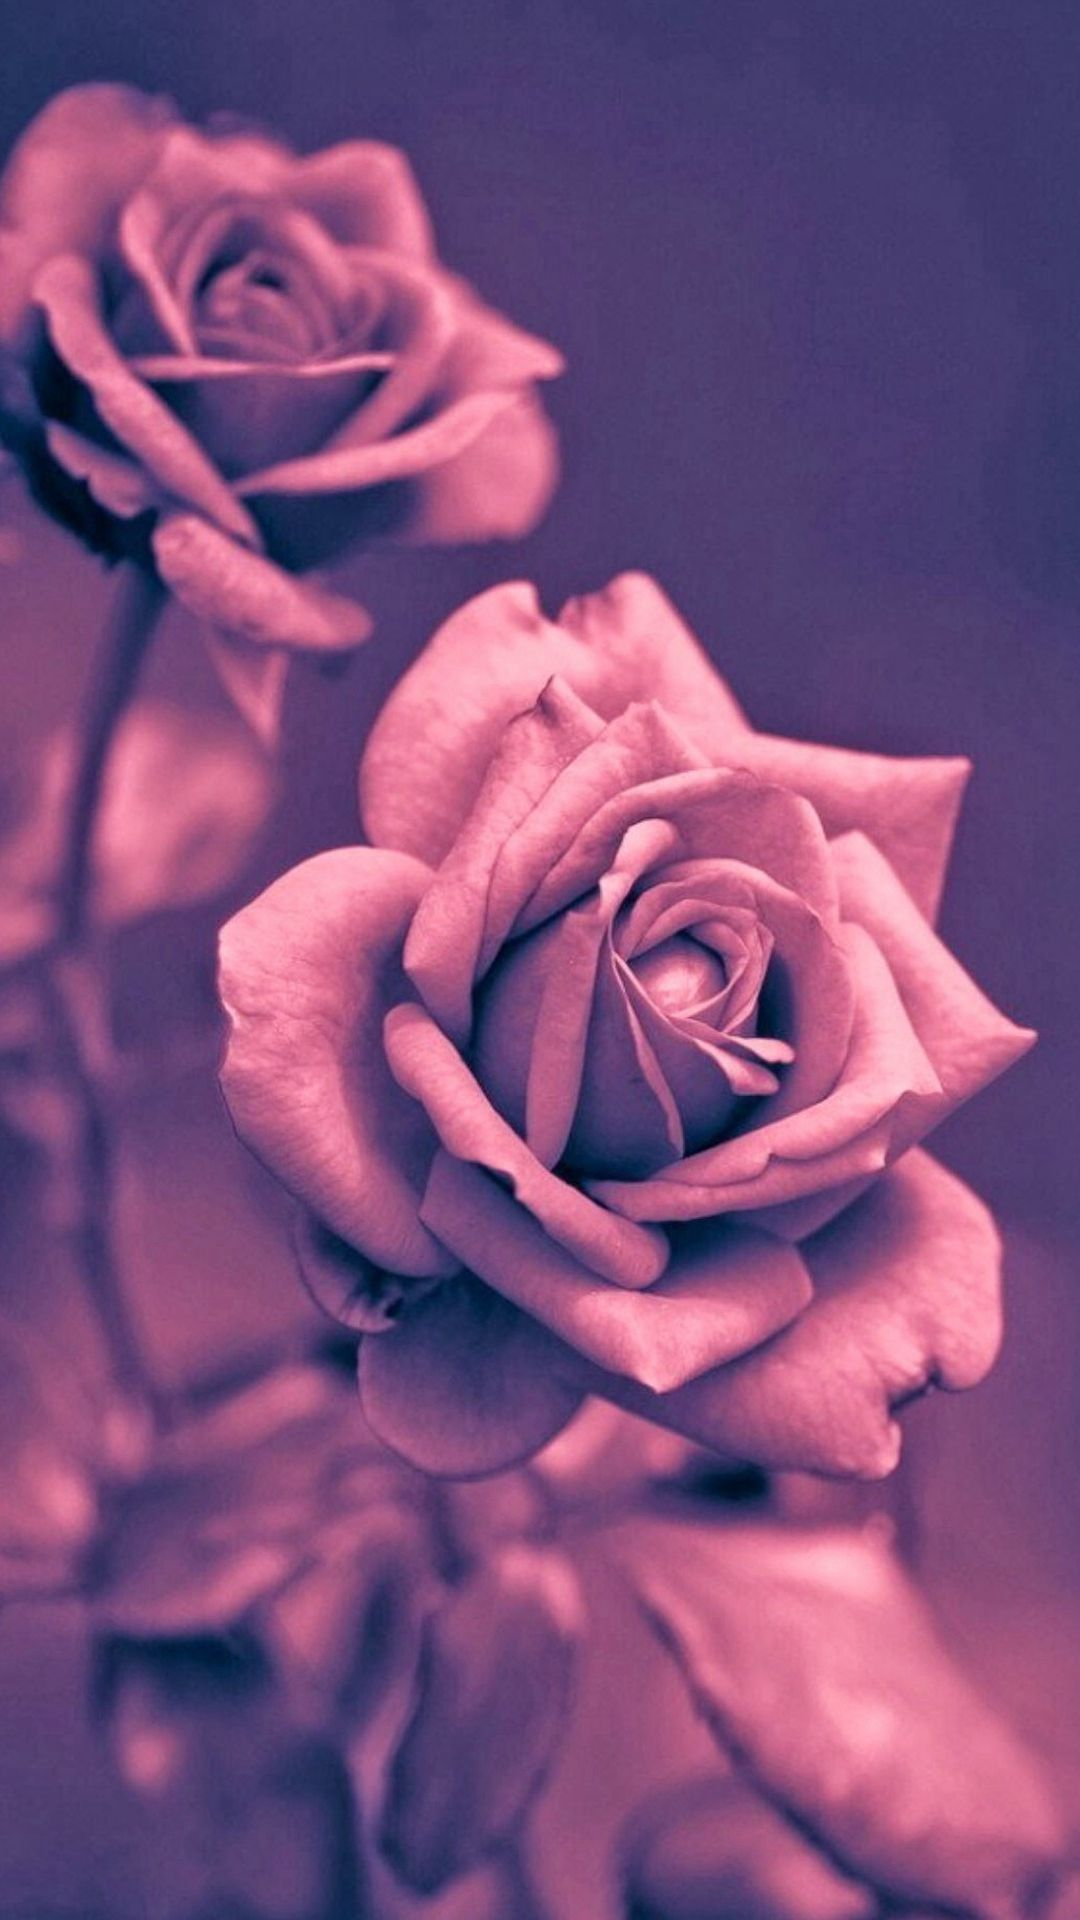 Beautiful Pink Rose Closeup Iphone 7 Wallpaper Gold Wallpaper Iphone Rose Gold Wallpaper Iphone Rose Wallpaper